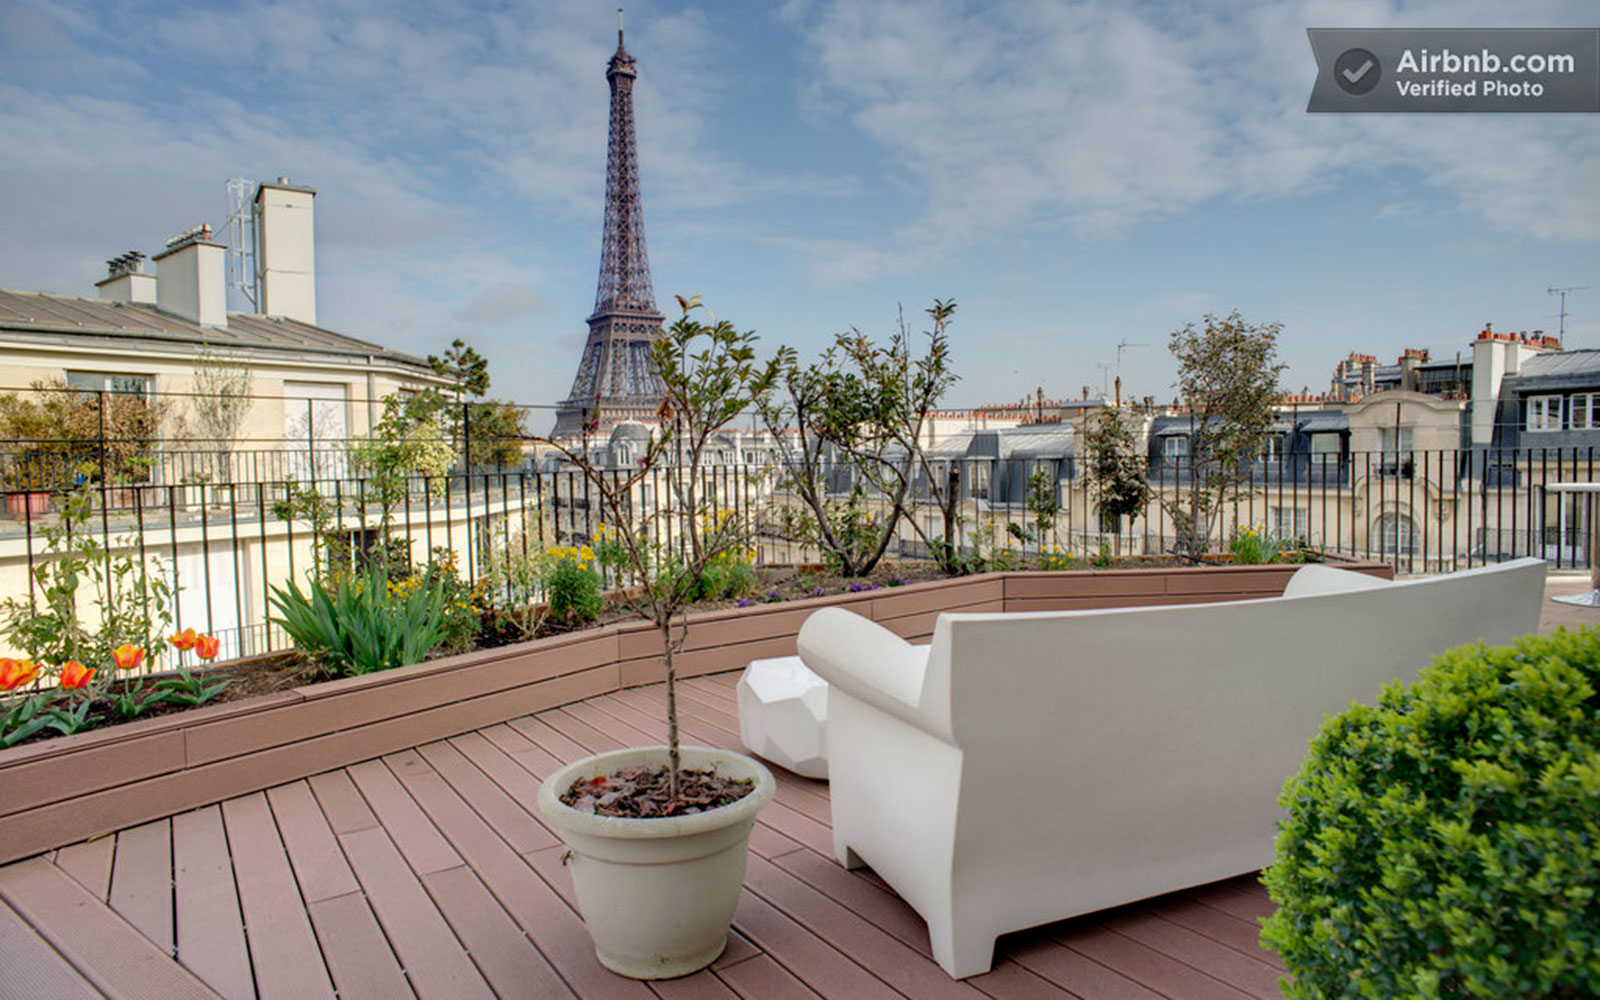 Airbnb Lisbonne Terrasse Paris To Begin Collecting Tourism Taxes In Paris Travel